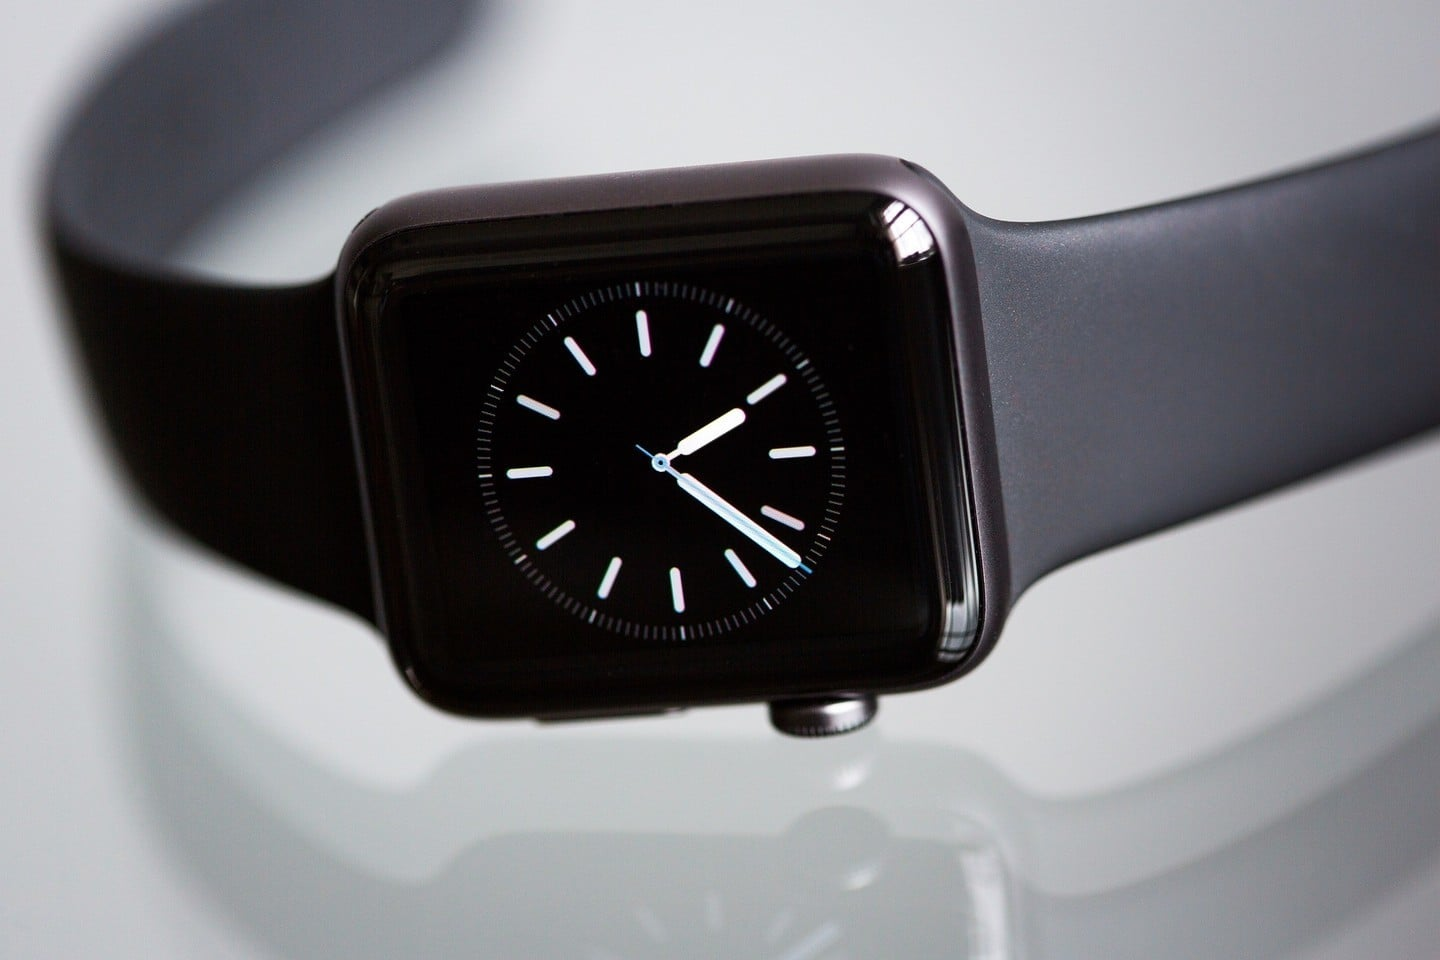 Apple Watch Series 4: The Latest Rumors and What to Expect This Fall